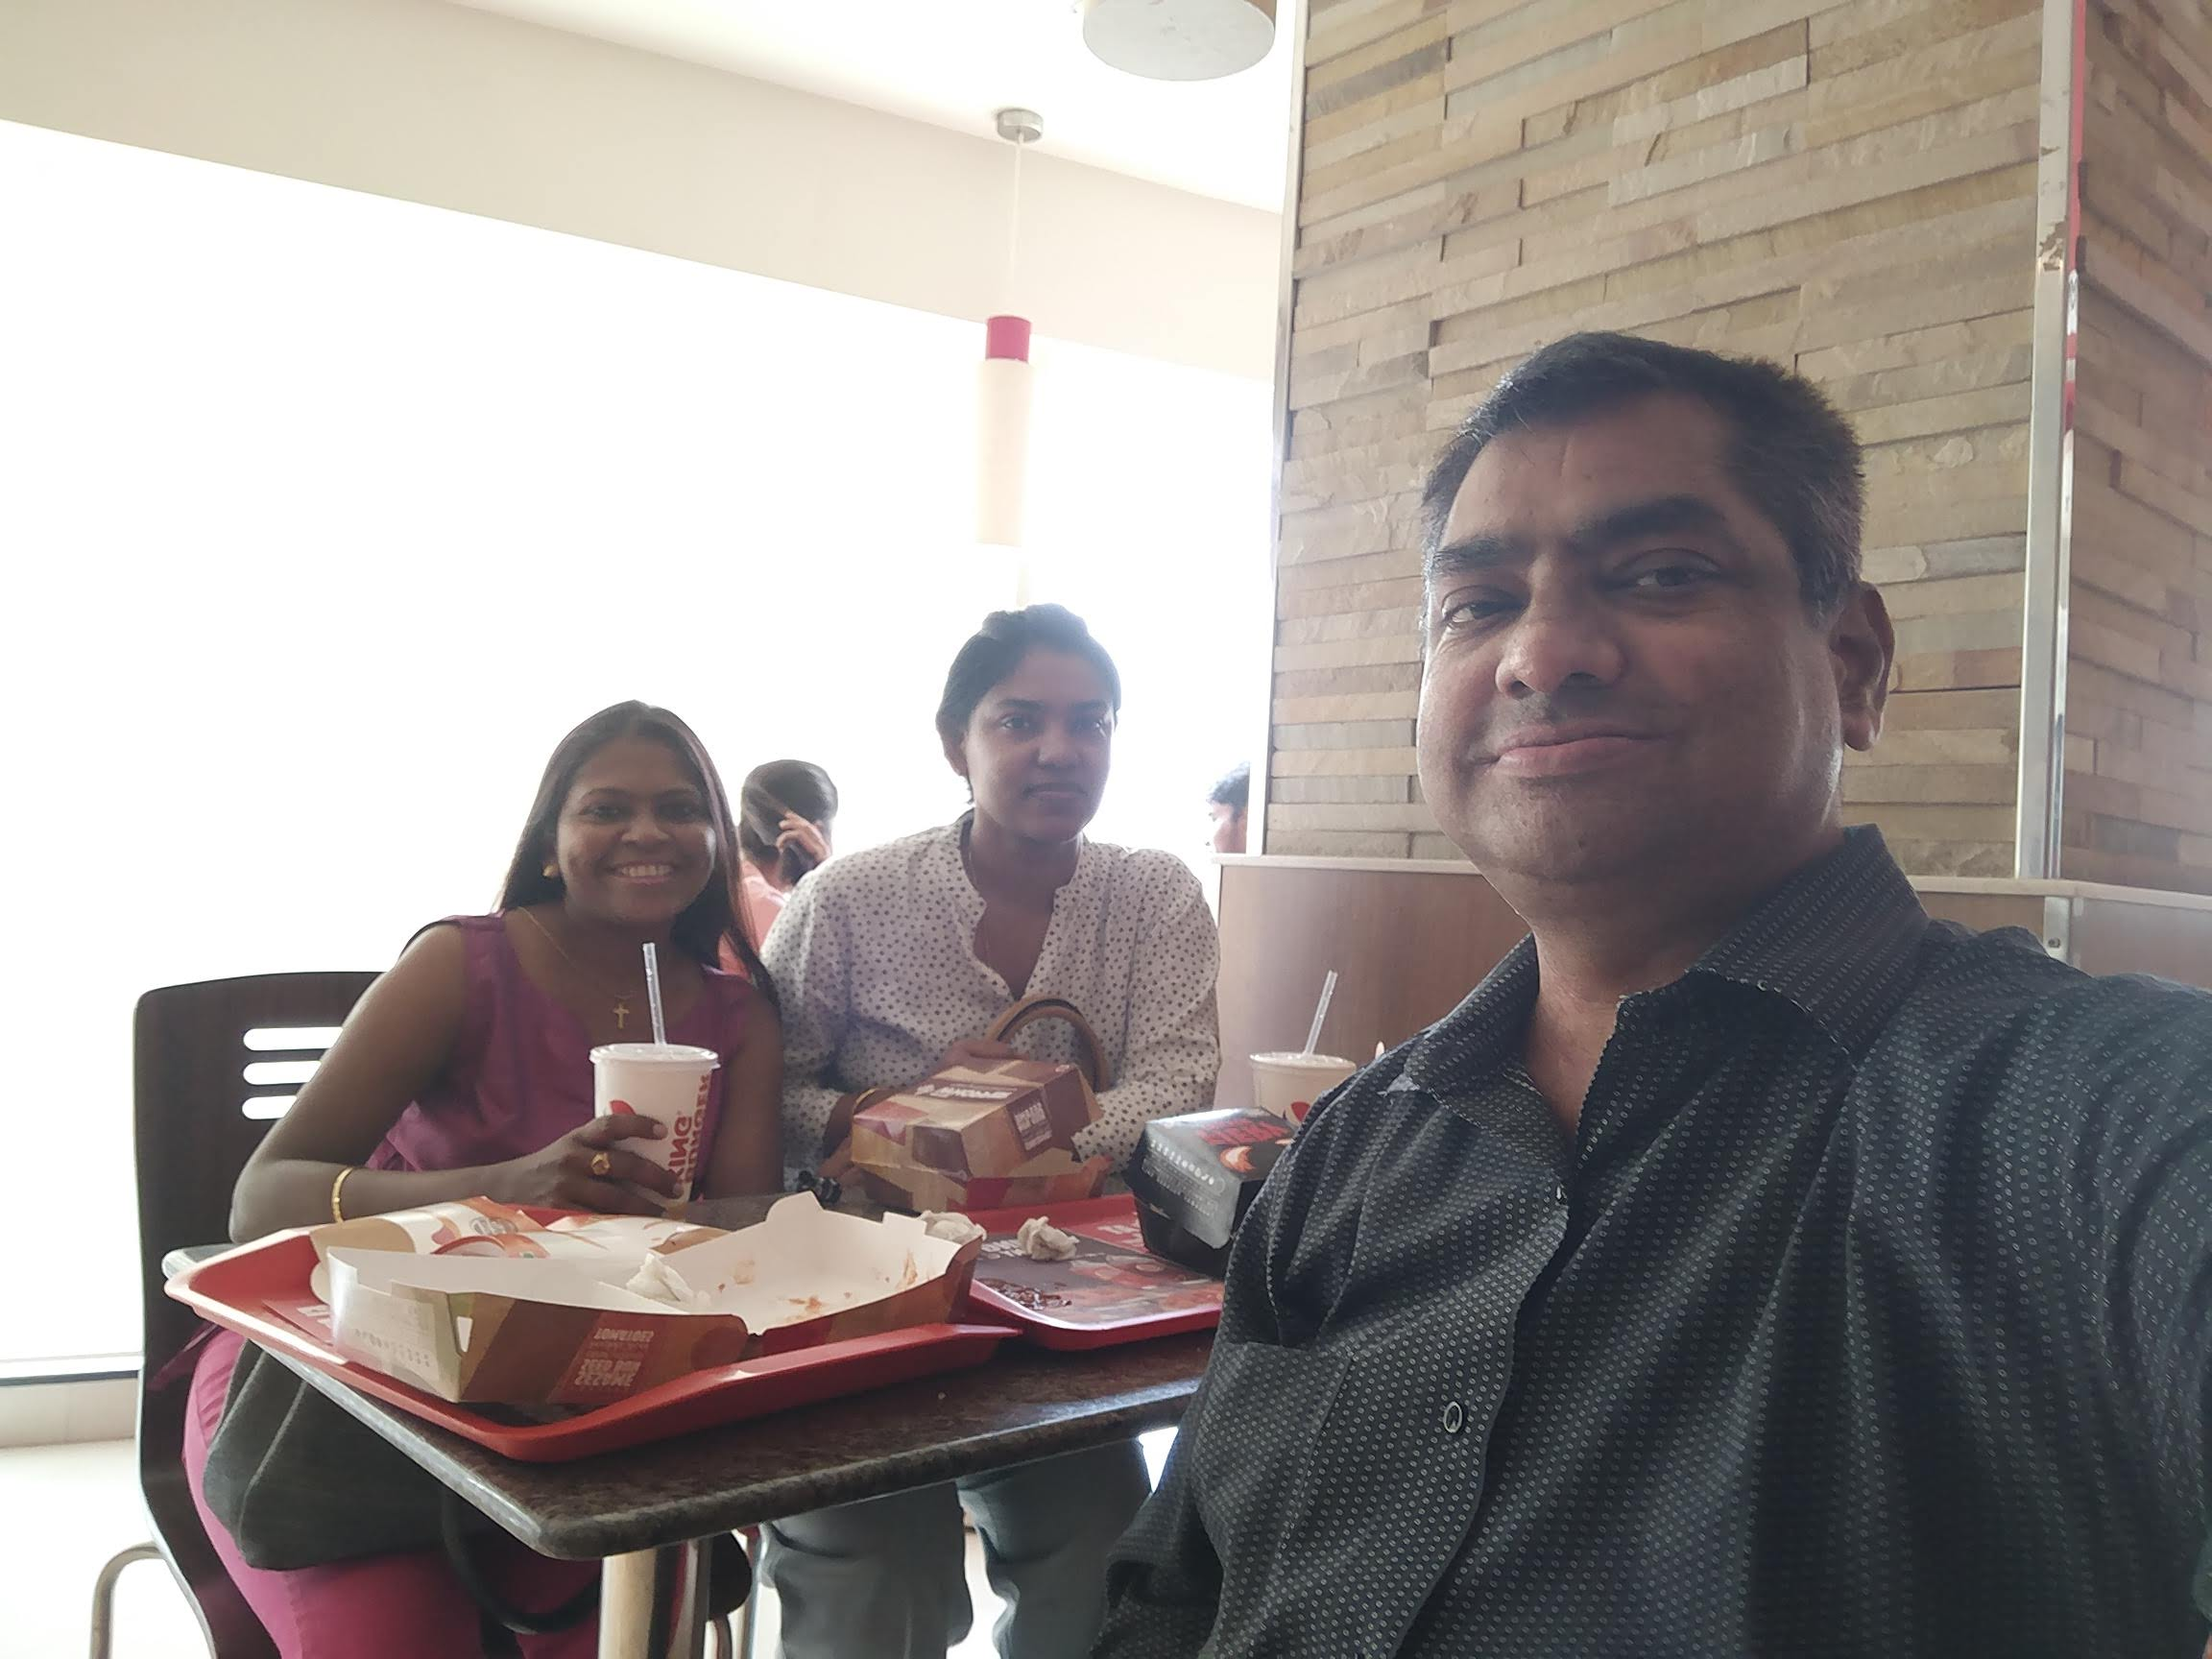 Rajiv, Padma, and Grace